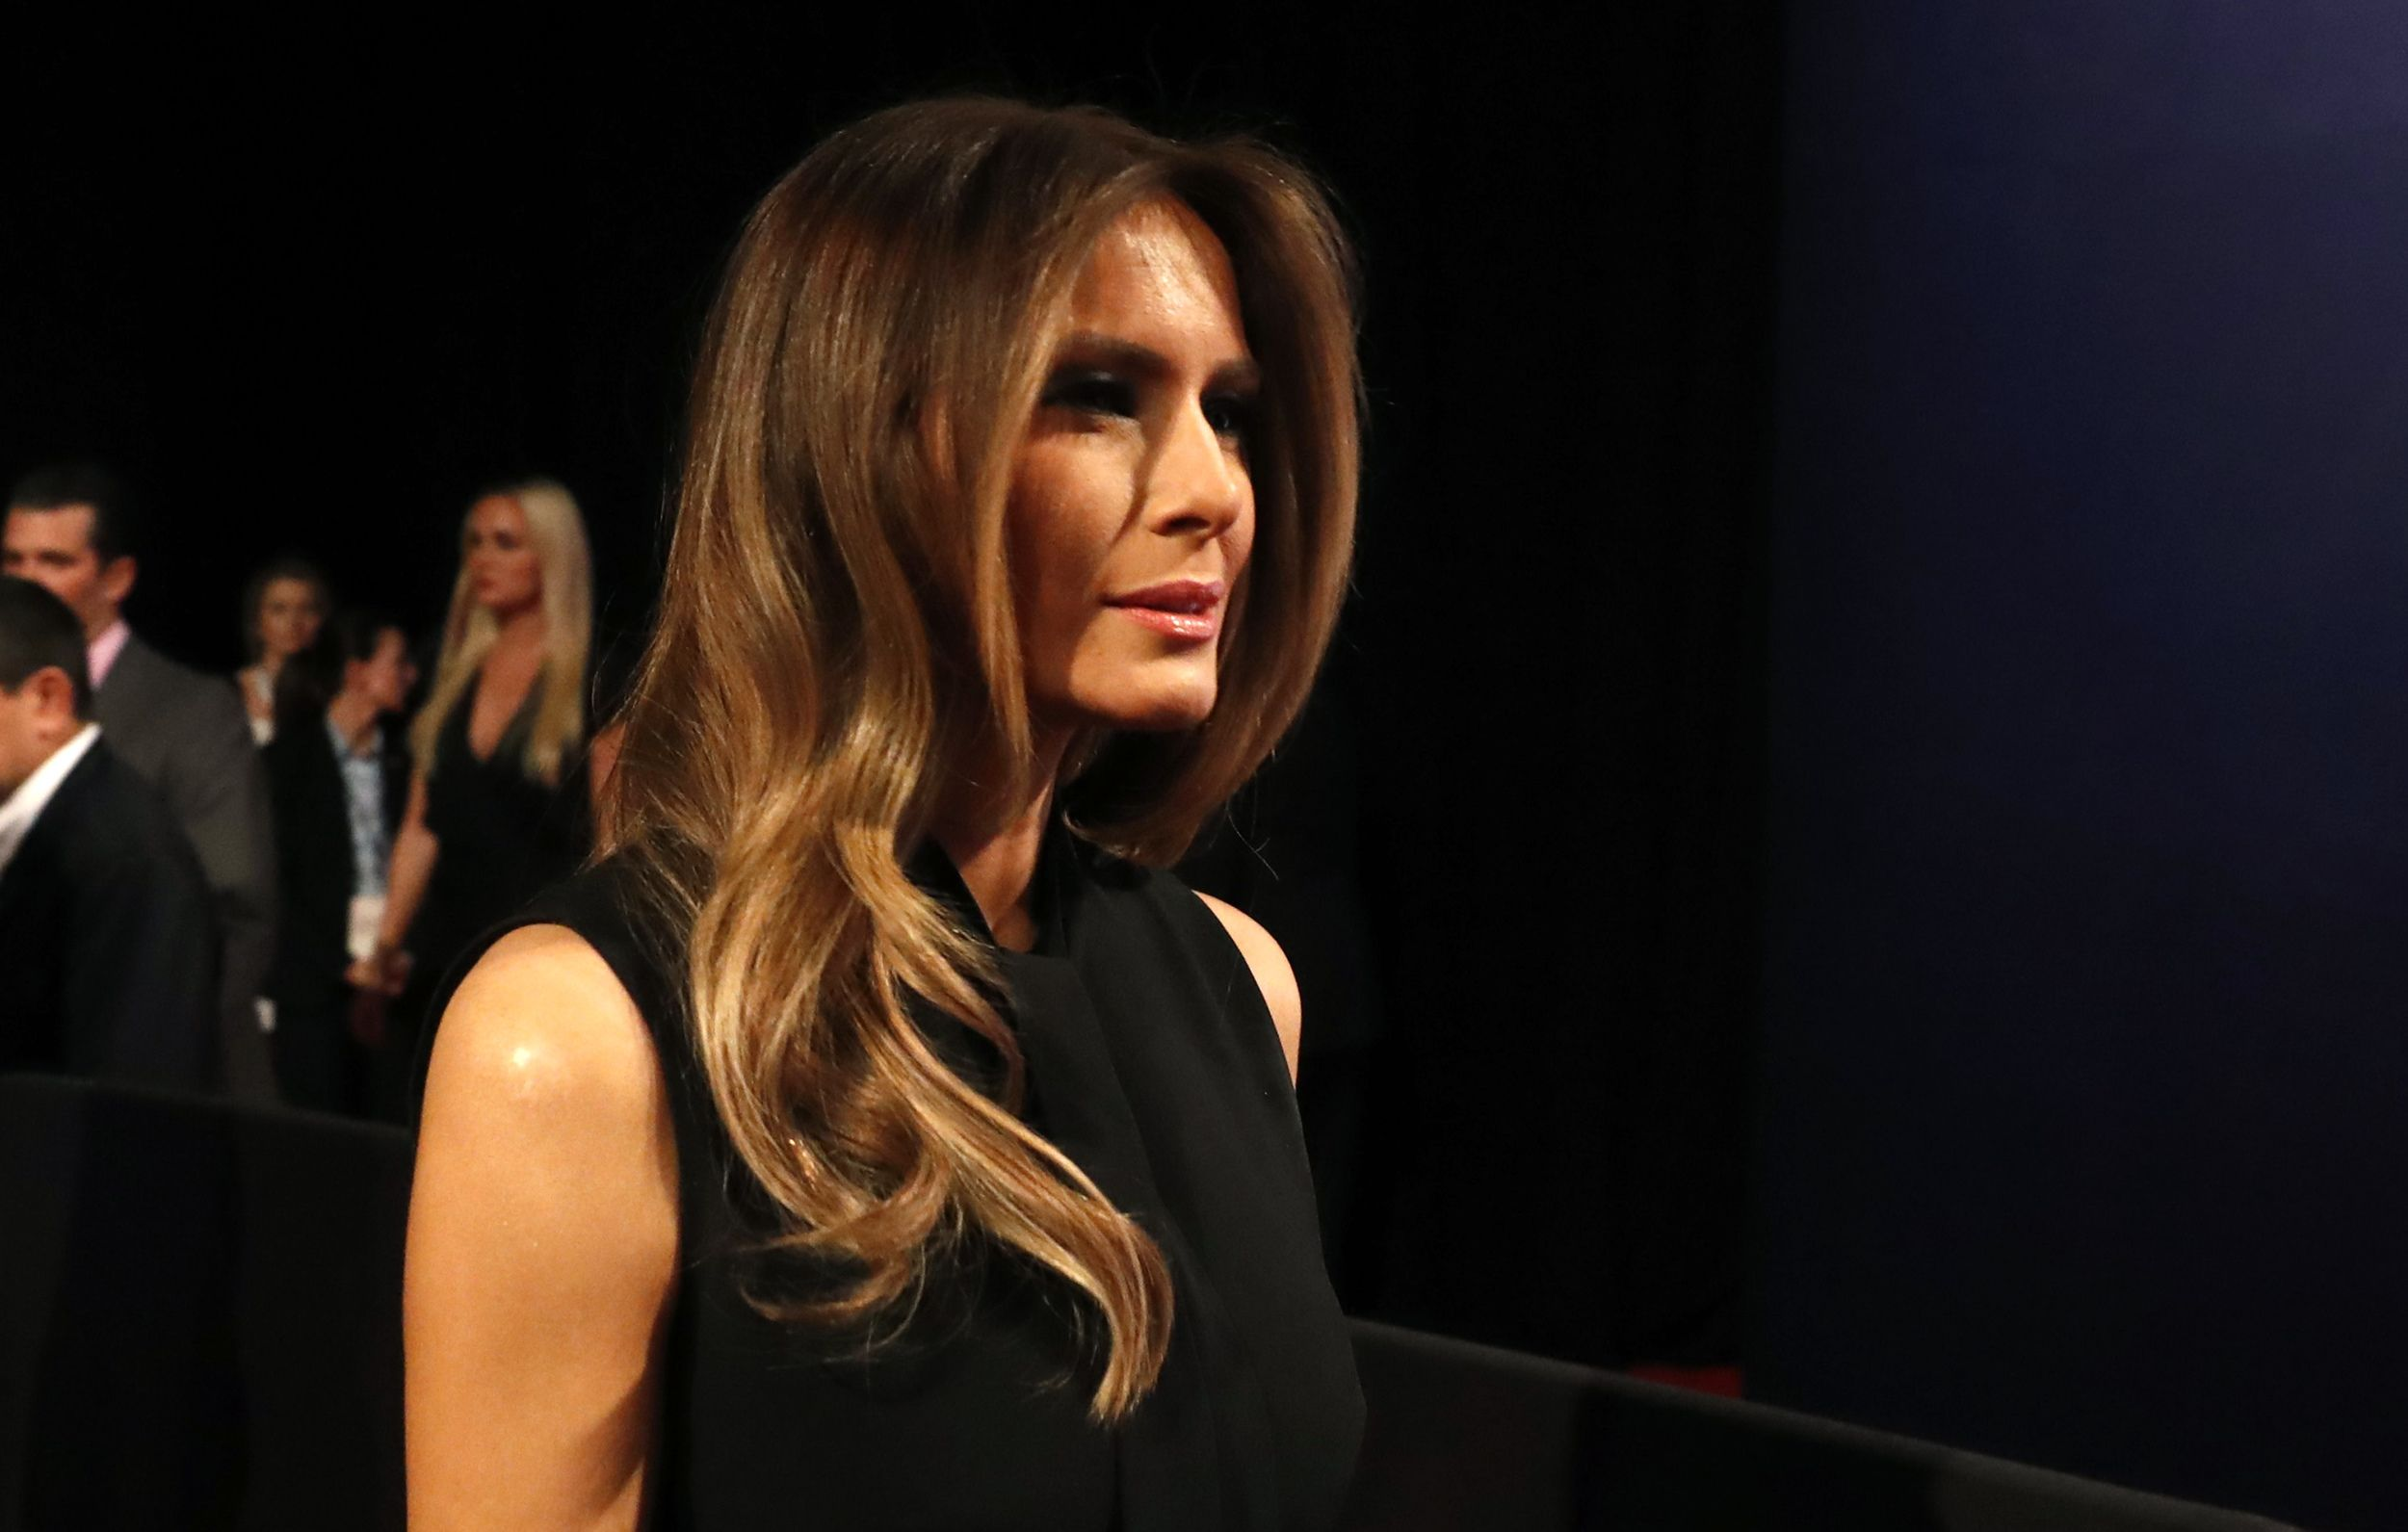 Melania Trump arrives for the third and final debate between Republican U.S. presidential nominee Donald Trump and Democratic nominee Hillary Clinton at UNLV in Las Vegas, Nevada, U.S., October 19, 2016. REUTERS/Carlos Barria via @AOL_Lifestyle Read more: http://www.aol.com/article/news/2016/10/24/donald-trump-just-got-some-of-his-best-polling-news-in-weeks/21590934/?a_dgi=aolshare_pinterest#fullscreen